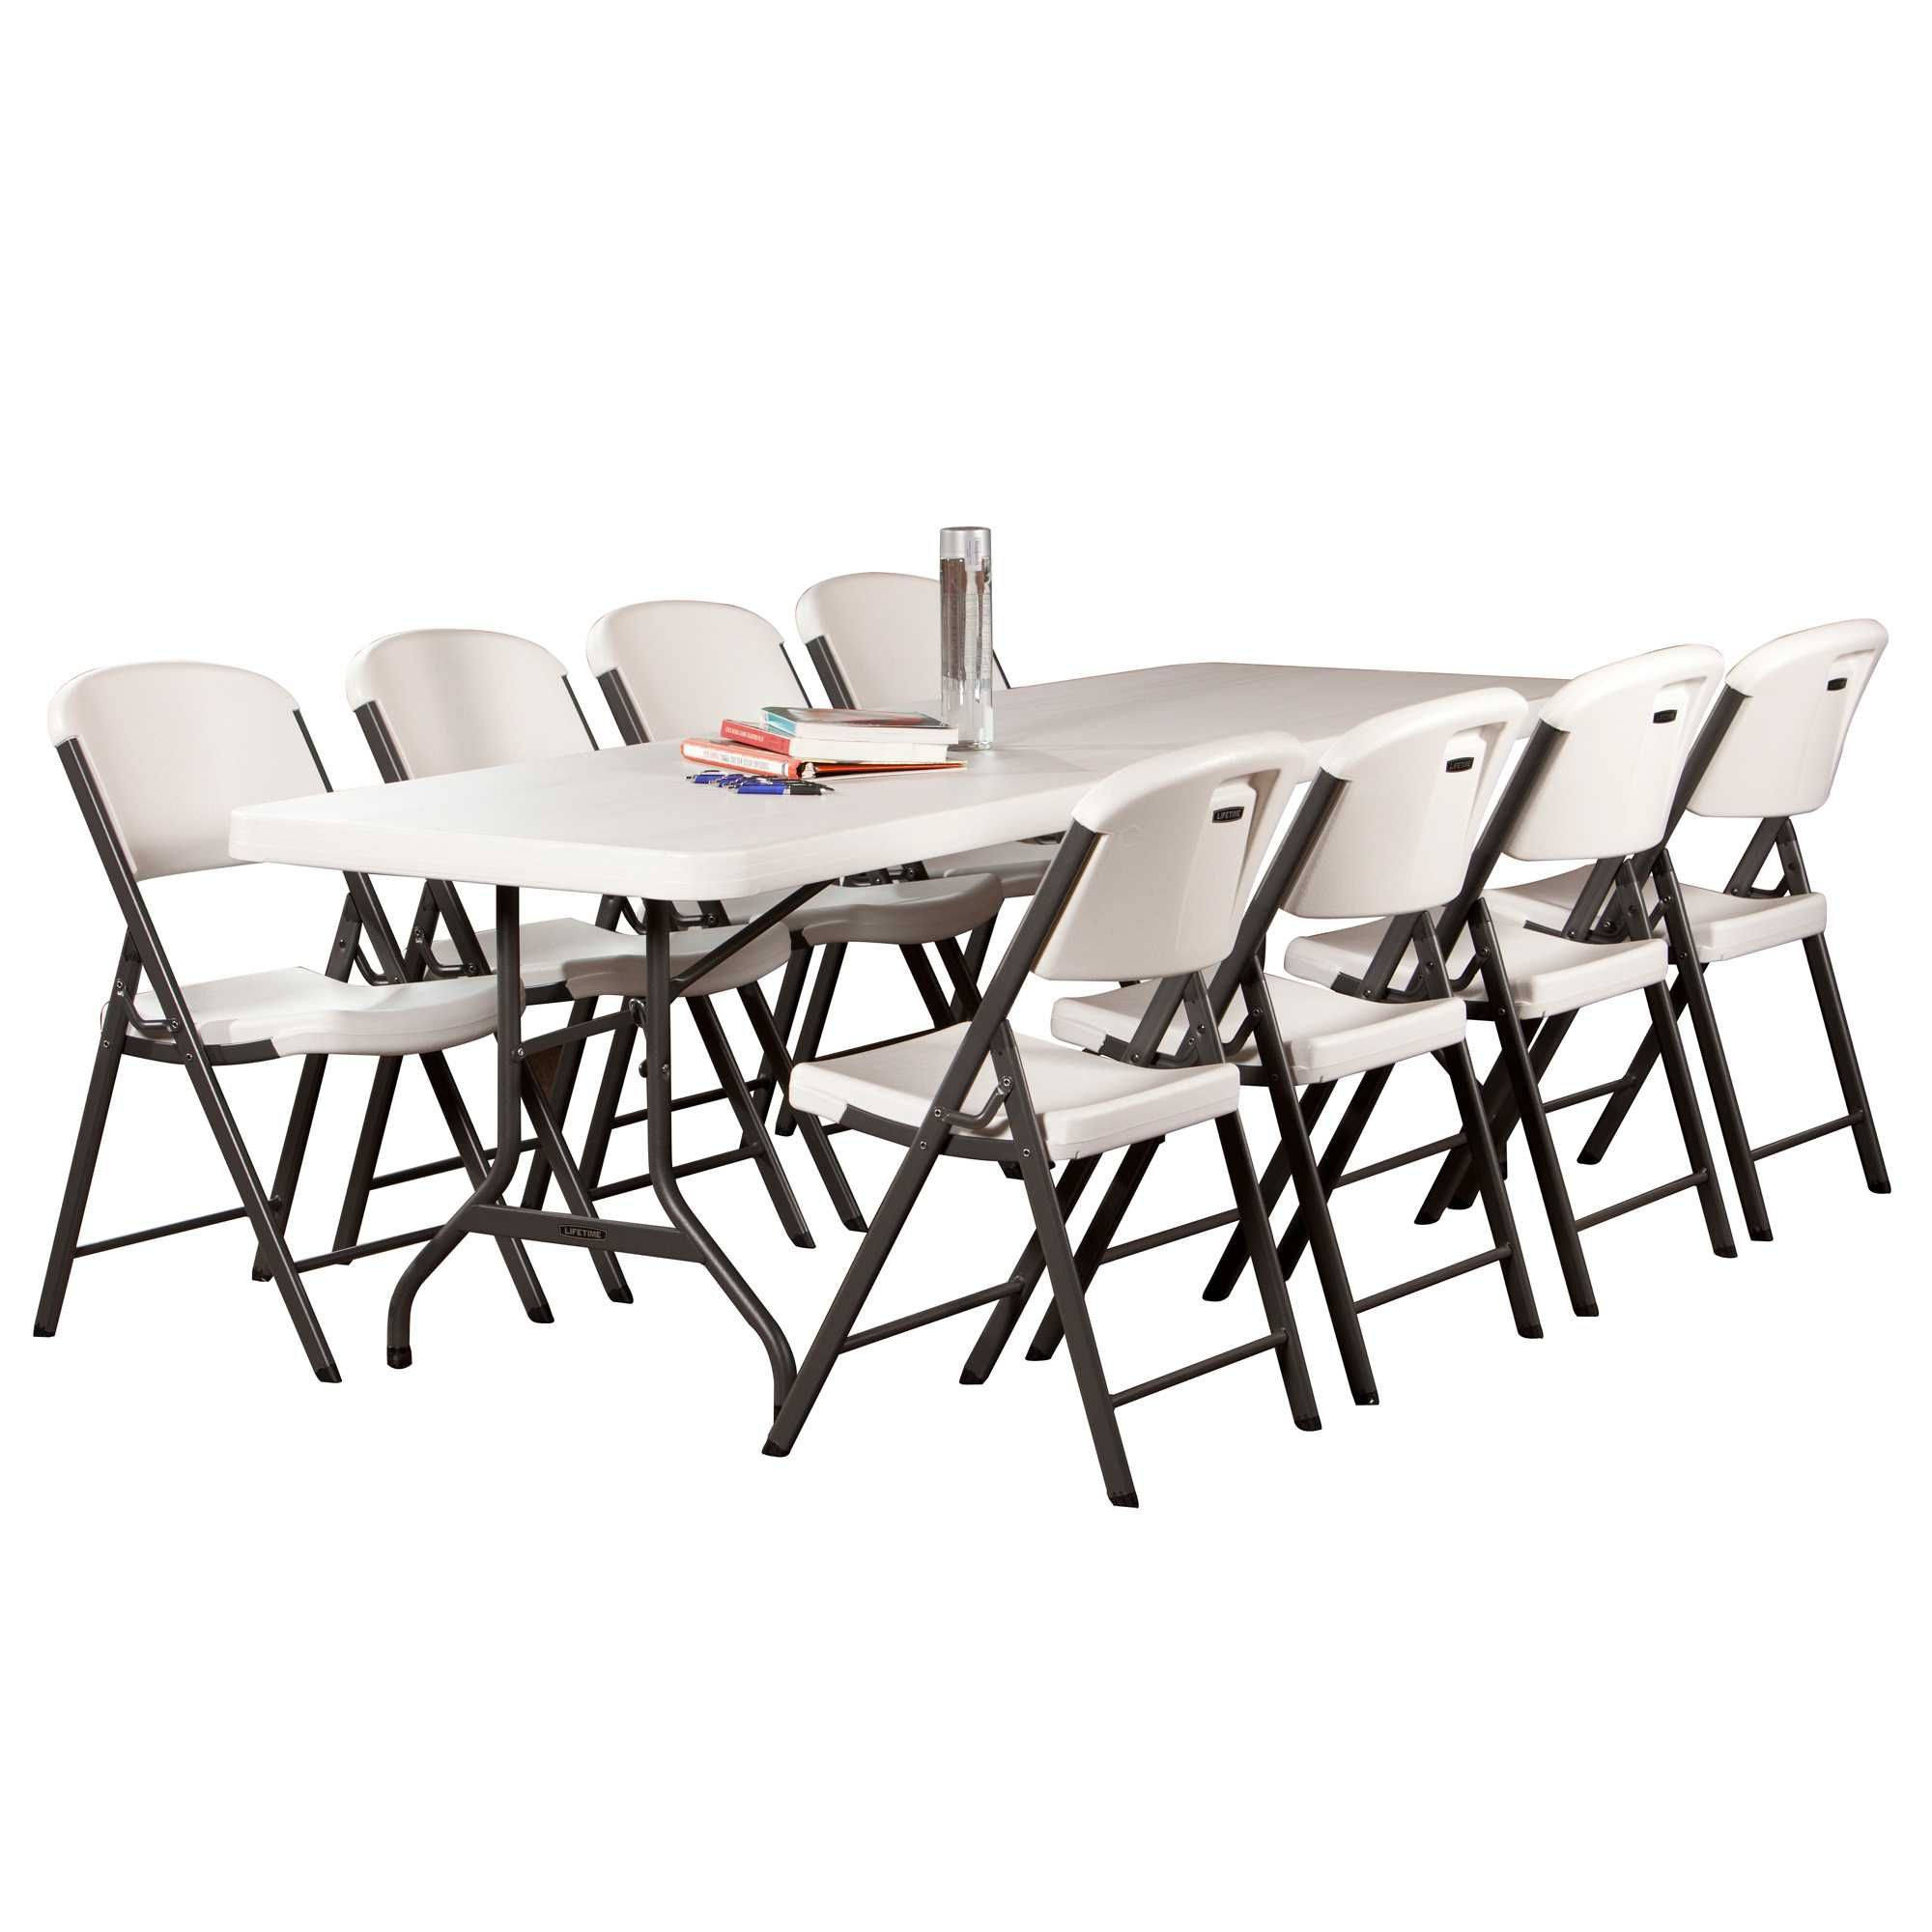 Pin By Competitive Edge Products Inc On Lifetime 8 Ft Banquet Tables Lifetime Tables Table Folding Table